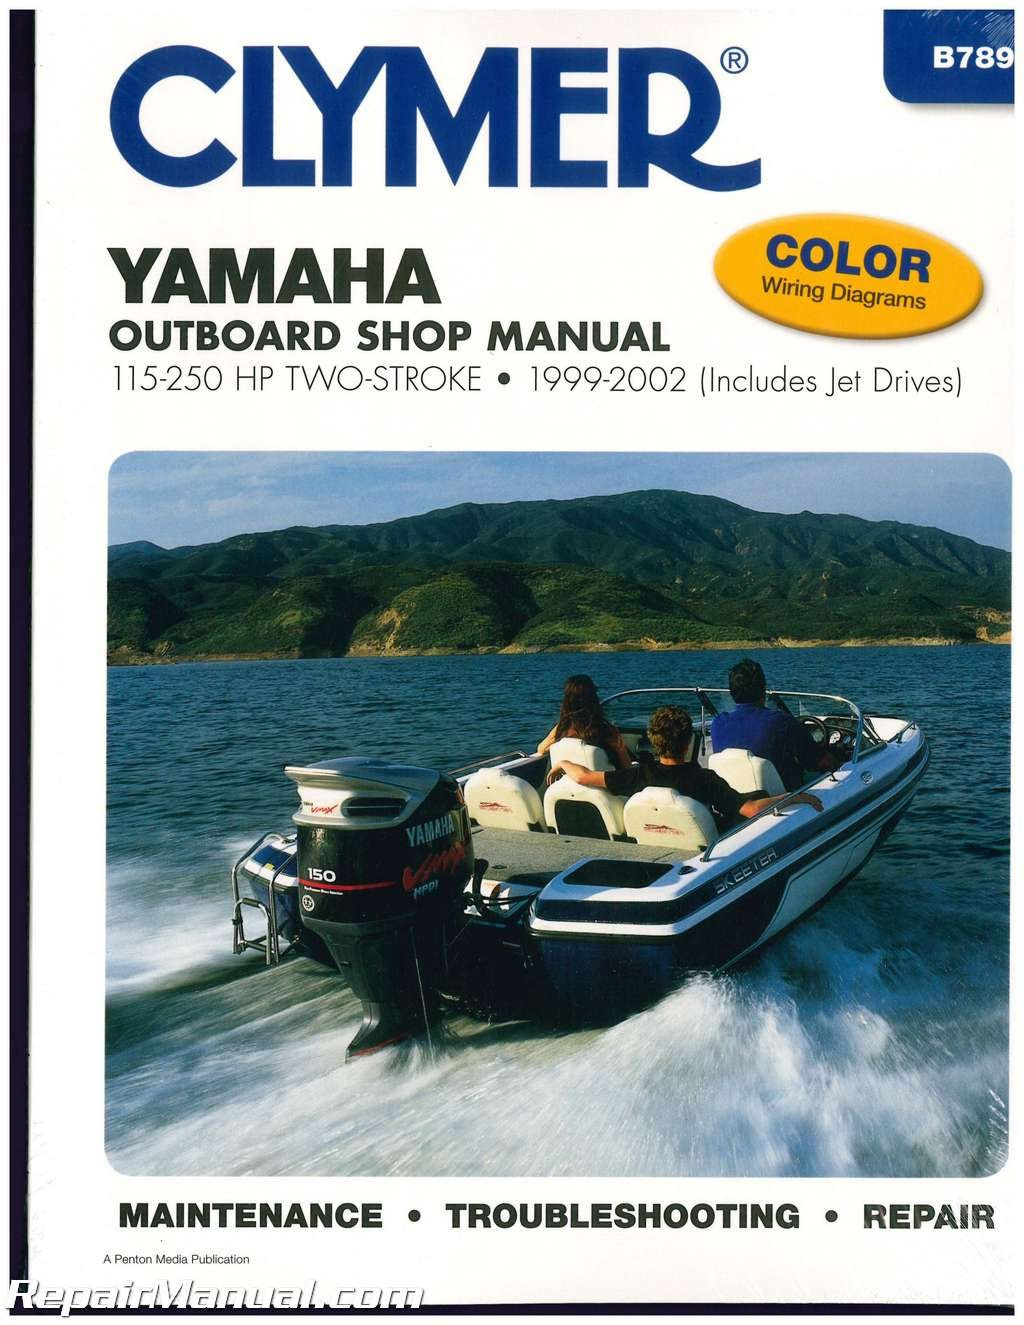 B789 Clymer Yamaha 115 250 Hp Two Stroke Outboards 1999 2002 Boat 200 Hpdi Wiring Diagram Repair Manual Manufacturer Books